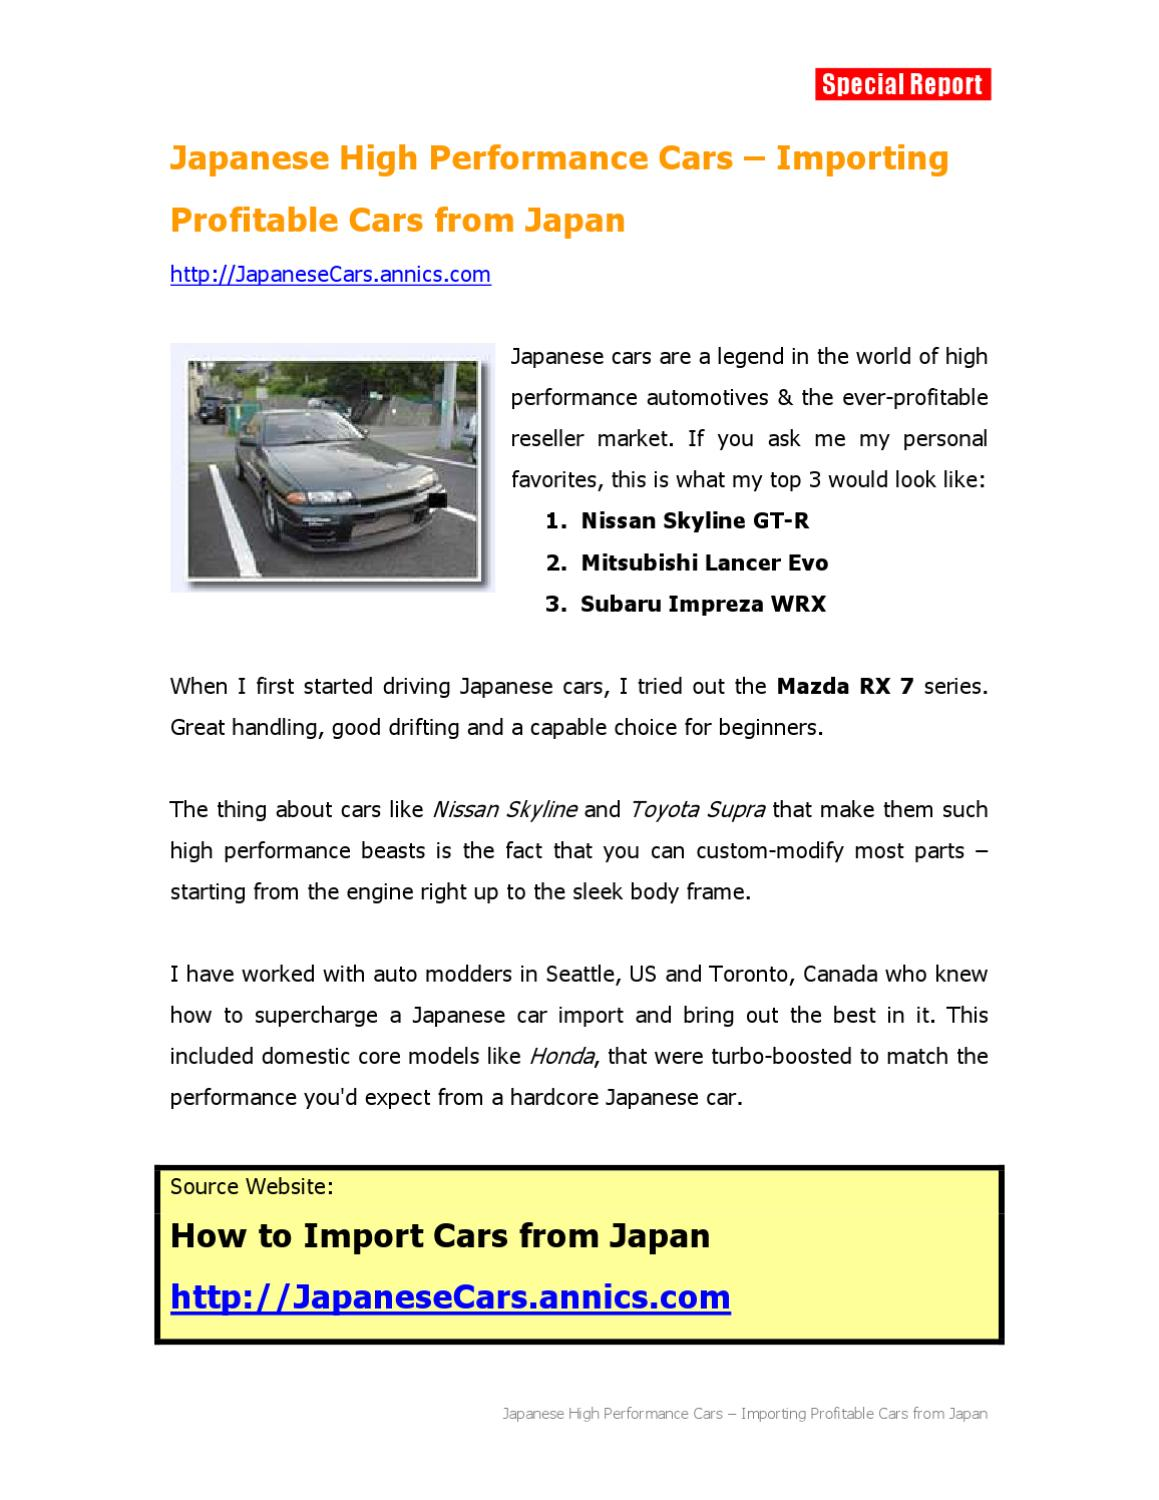 Japanese High Performance Cars Importing Profitable Cars From